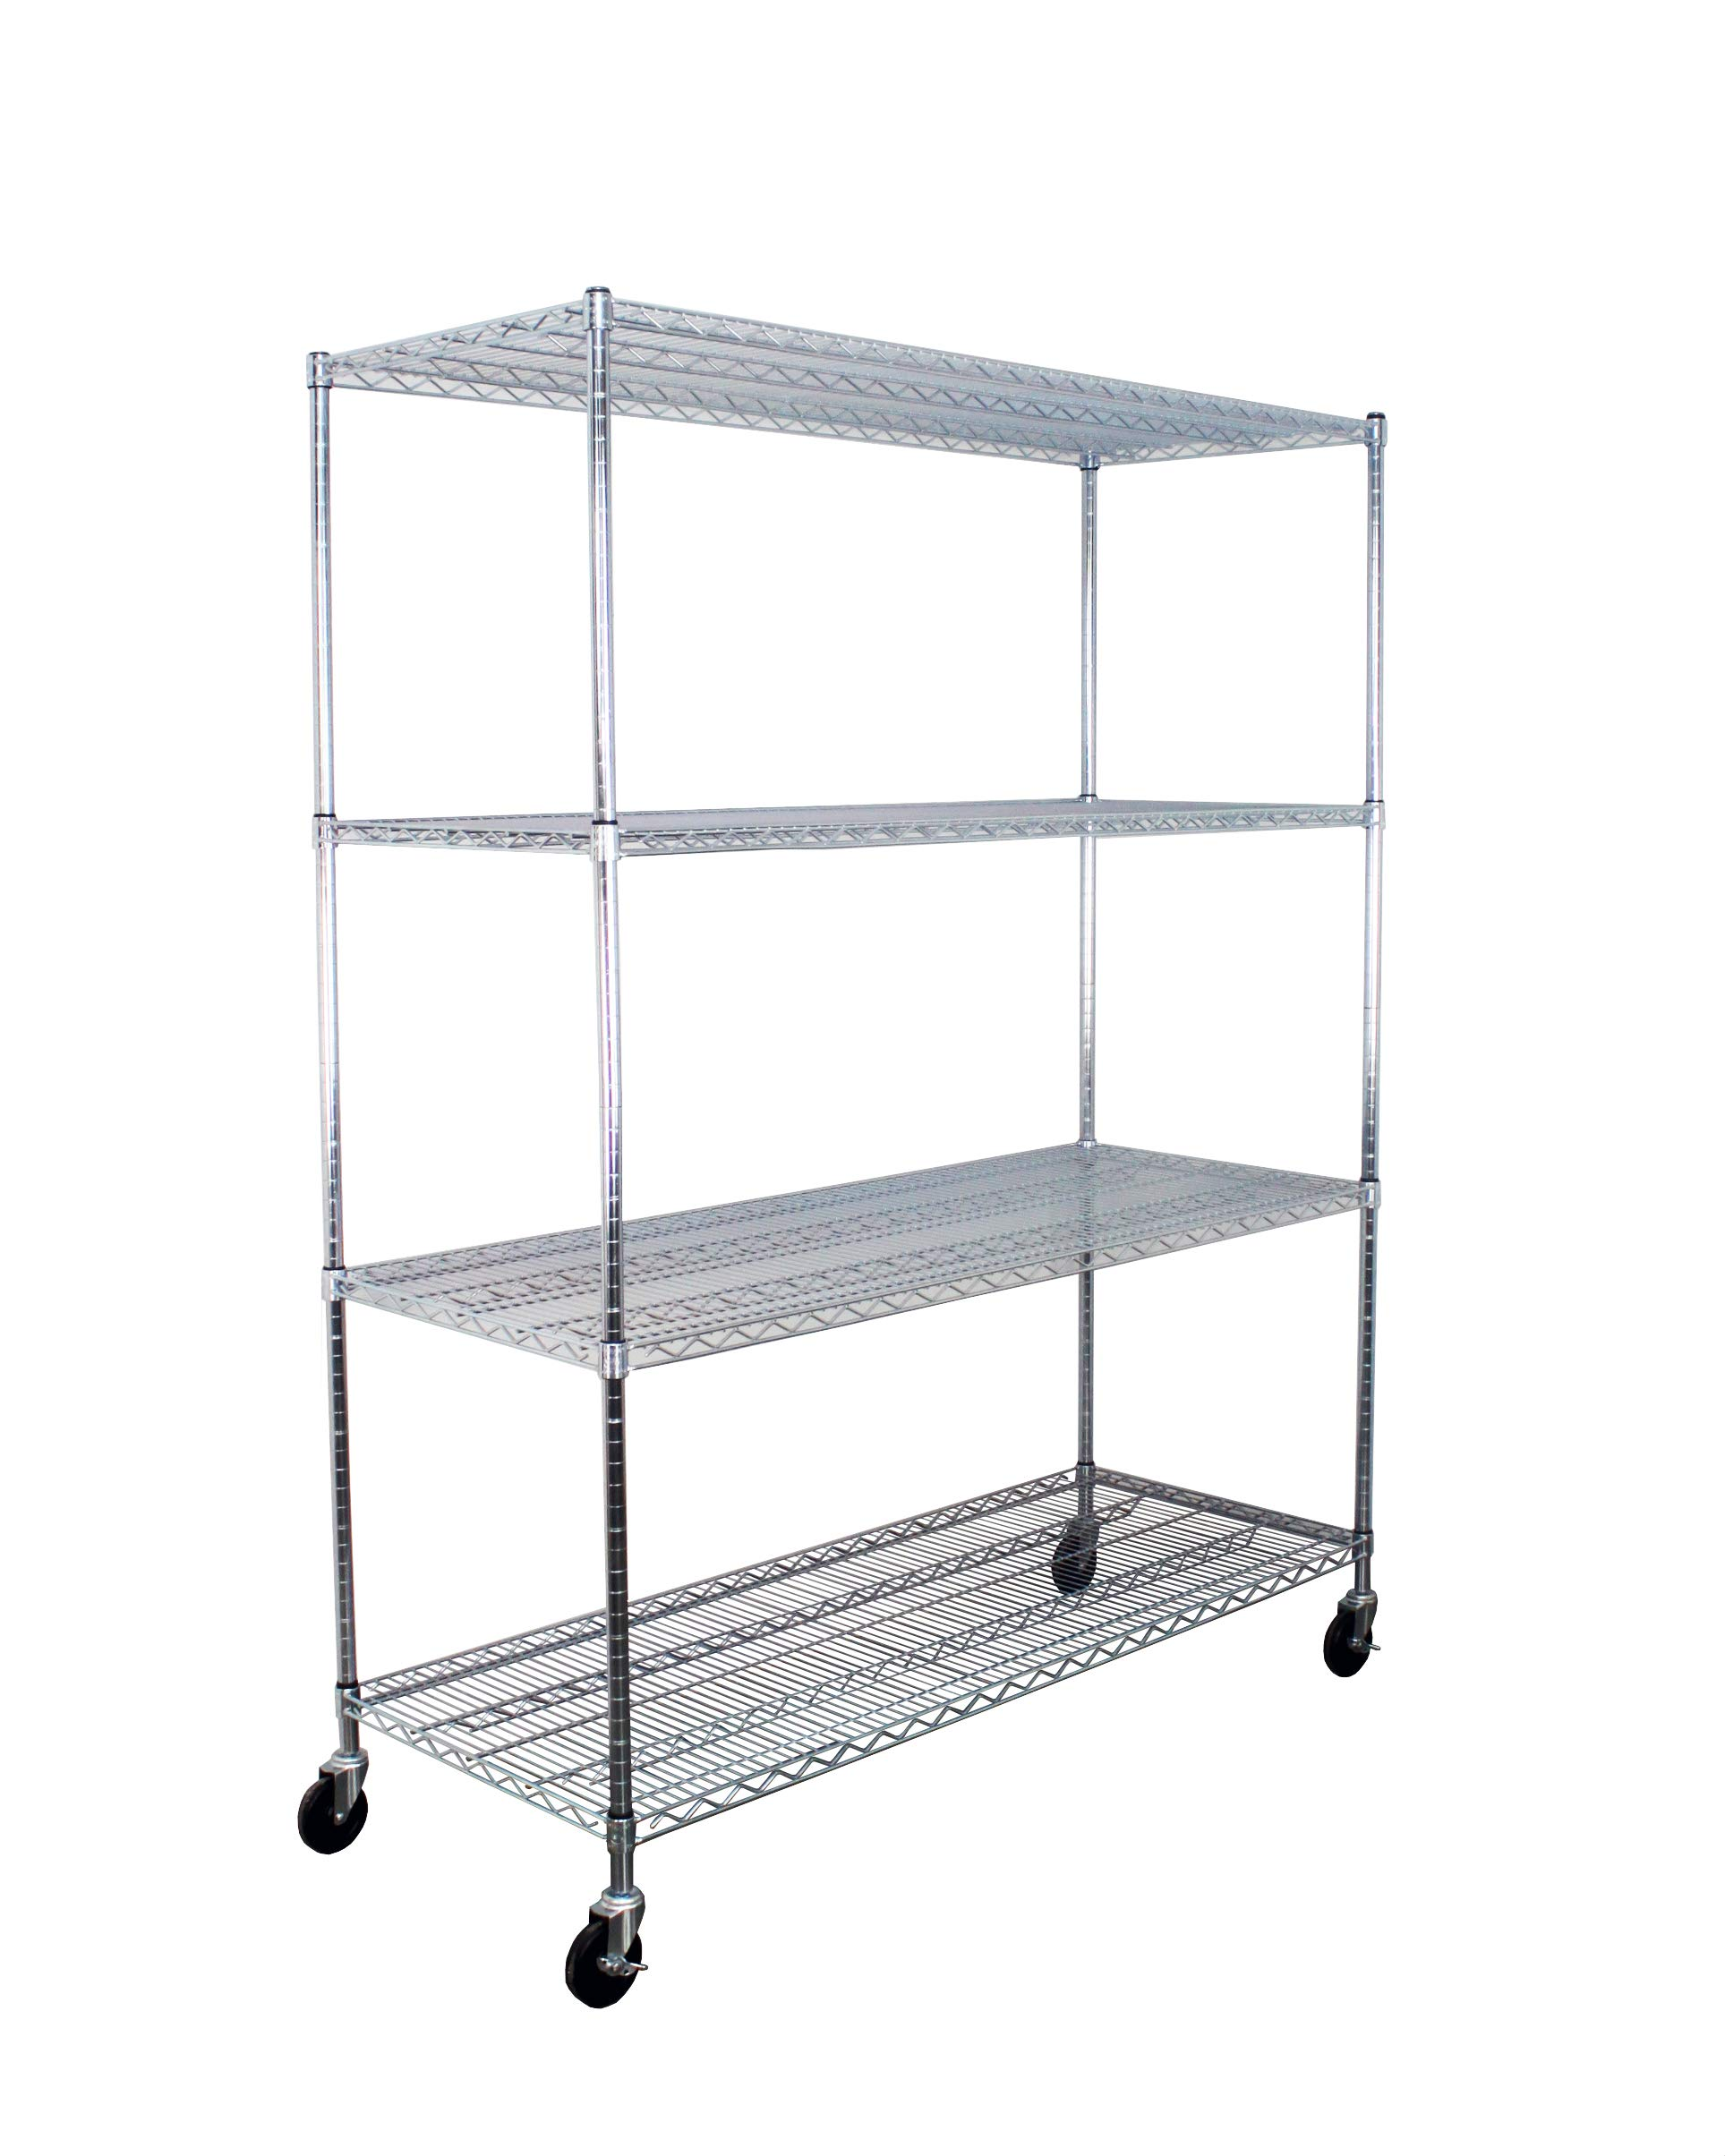 SafeRacks NSF Certified Commercial Grade Adjustable 4-Tier Steel Wire Shelving Rack with 4'' Wheels - 24'' x 60'' x 72'' (24''x60''x72'' 4-Tier) by SafeRacks